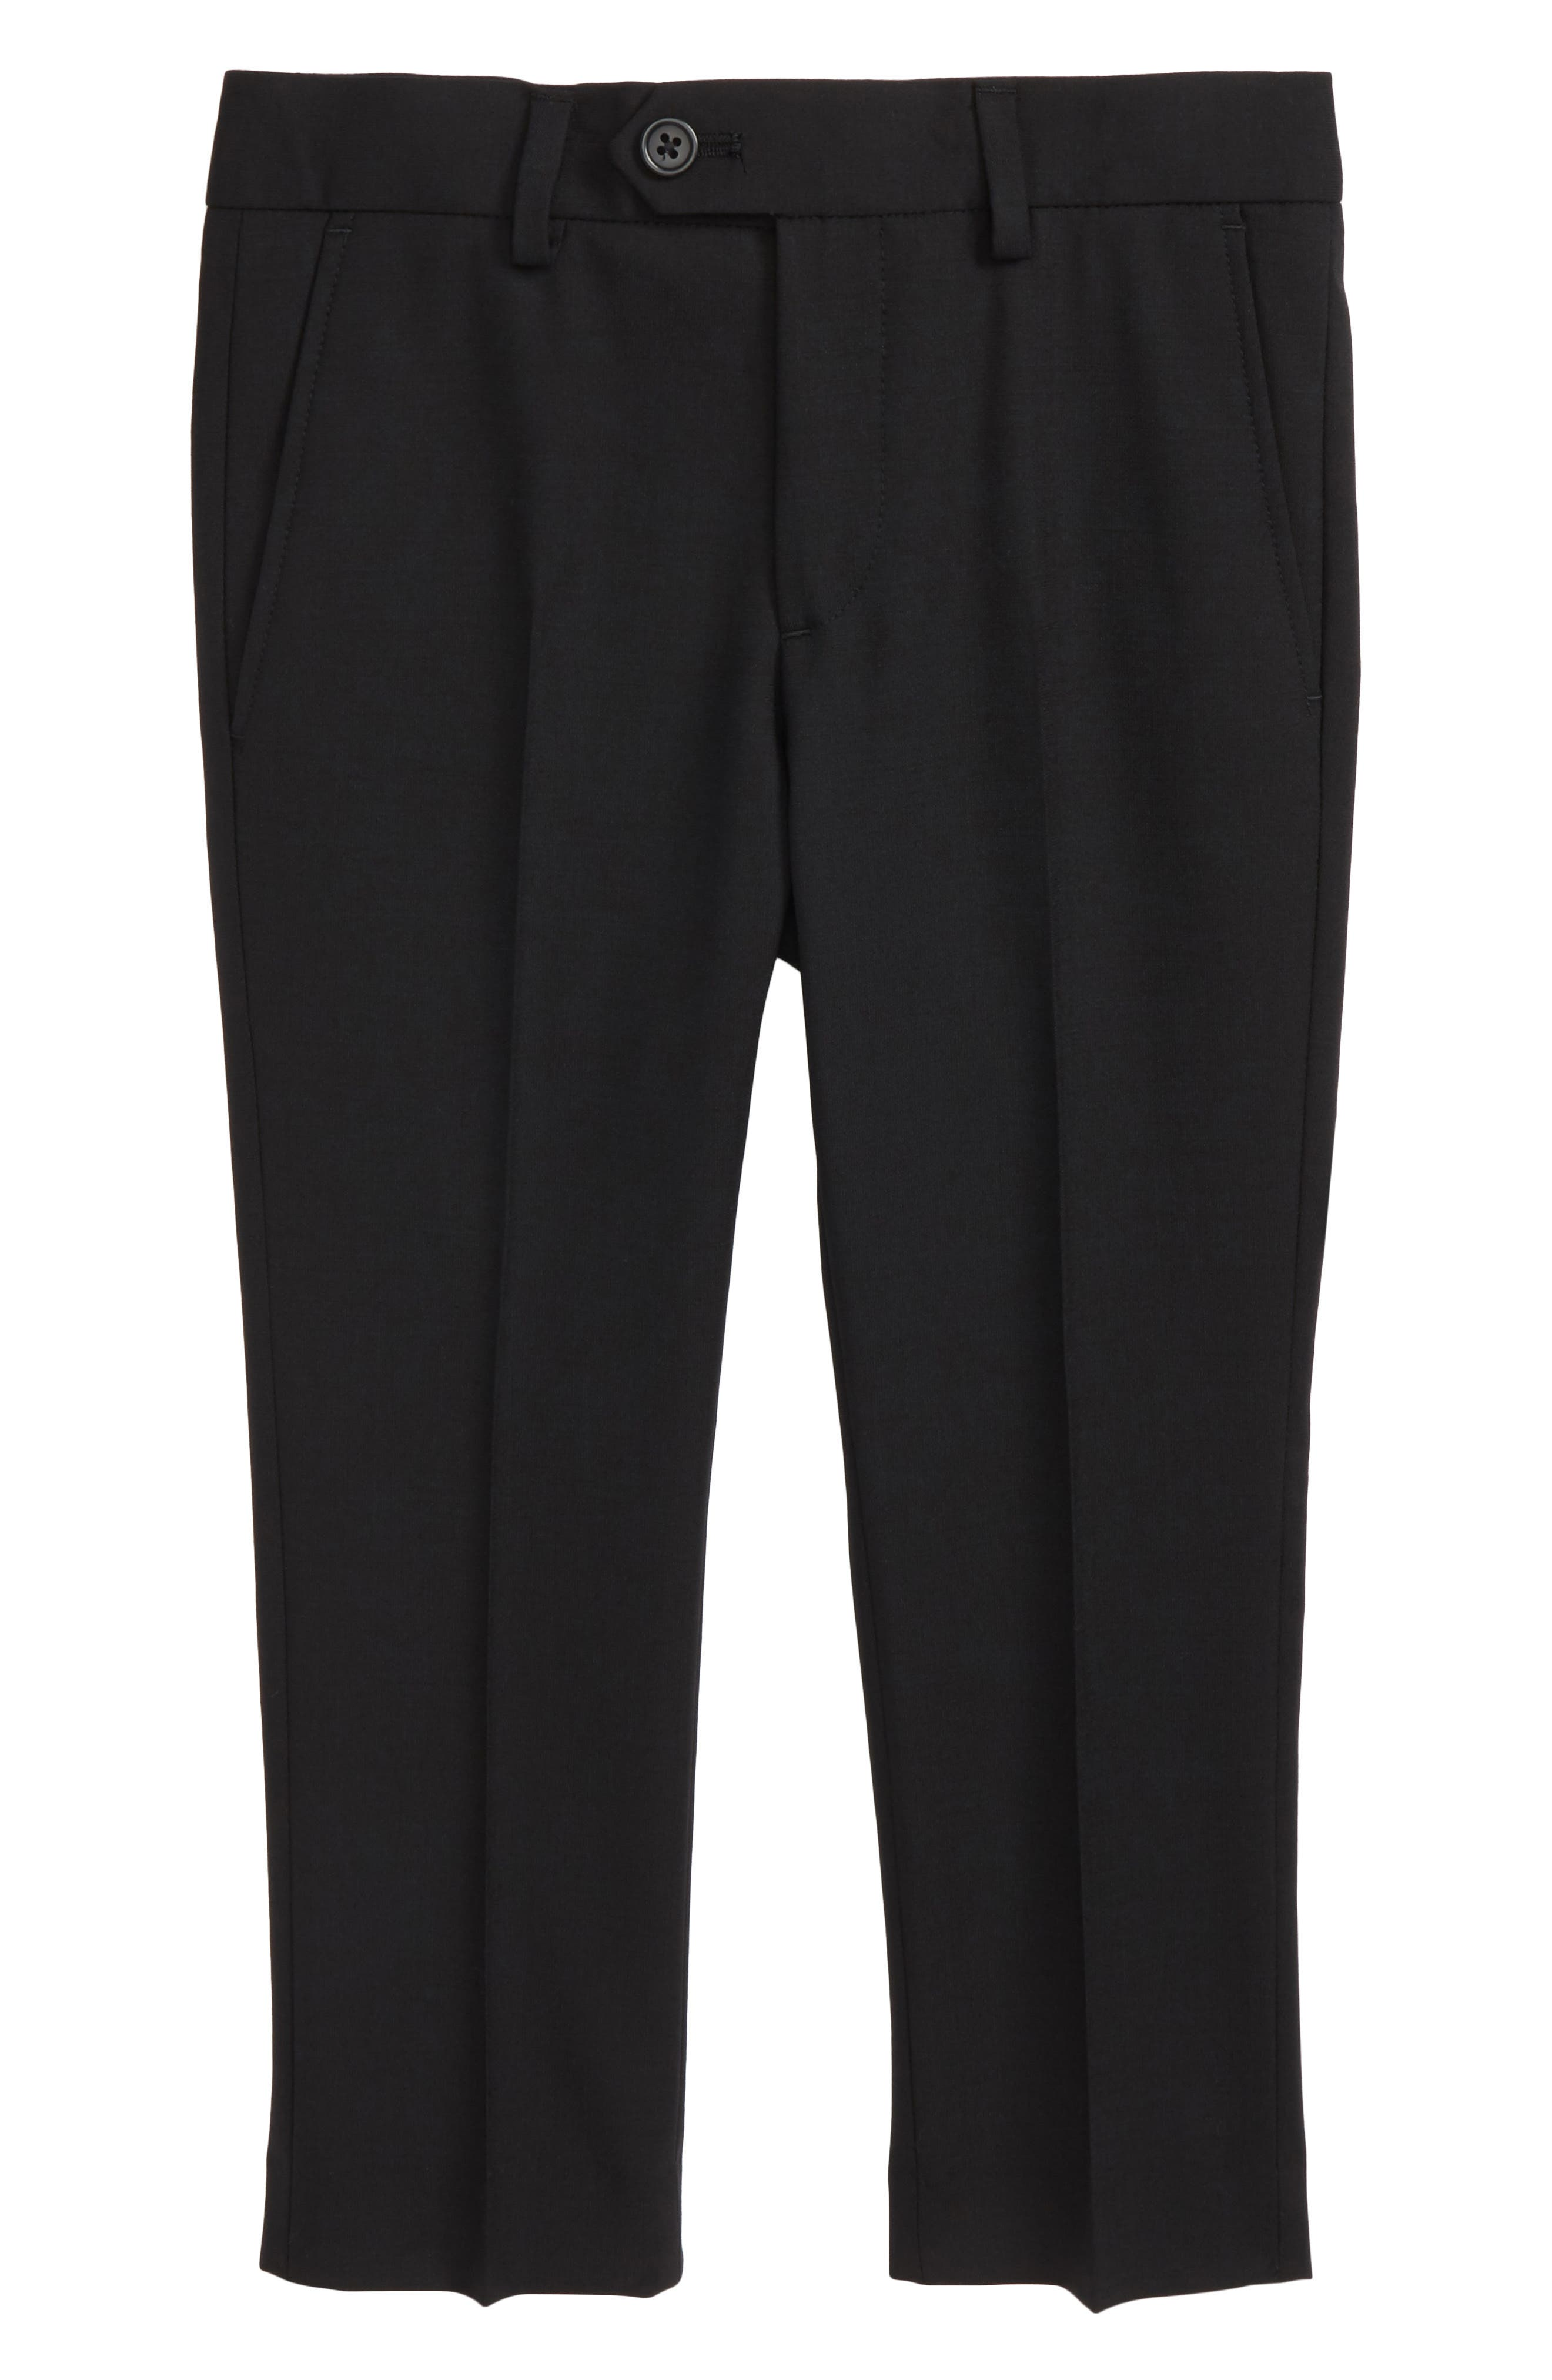 TALLIA,                             Solid Wool Blend Flat Front Trousers,                             Main thumbnail 1, color,                             BLACK